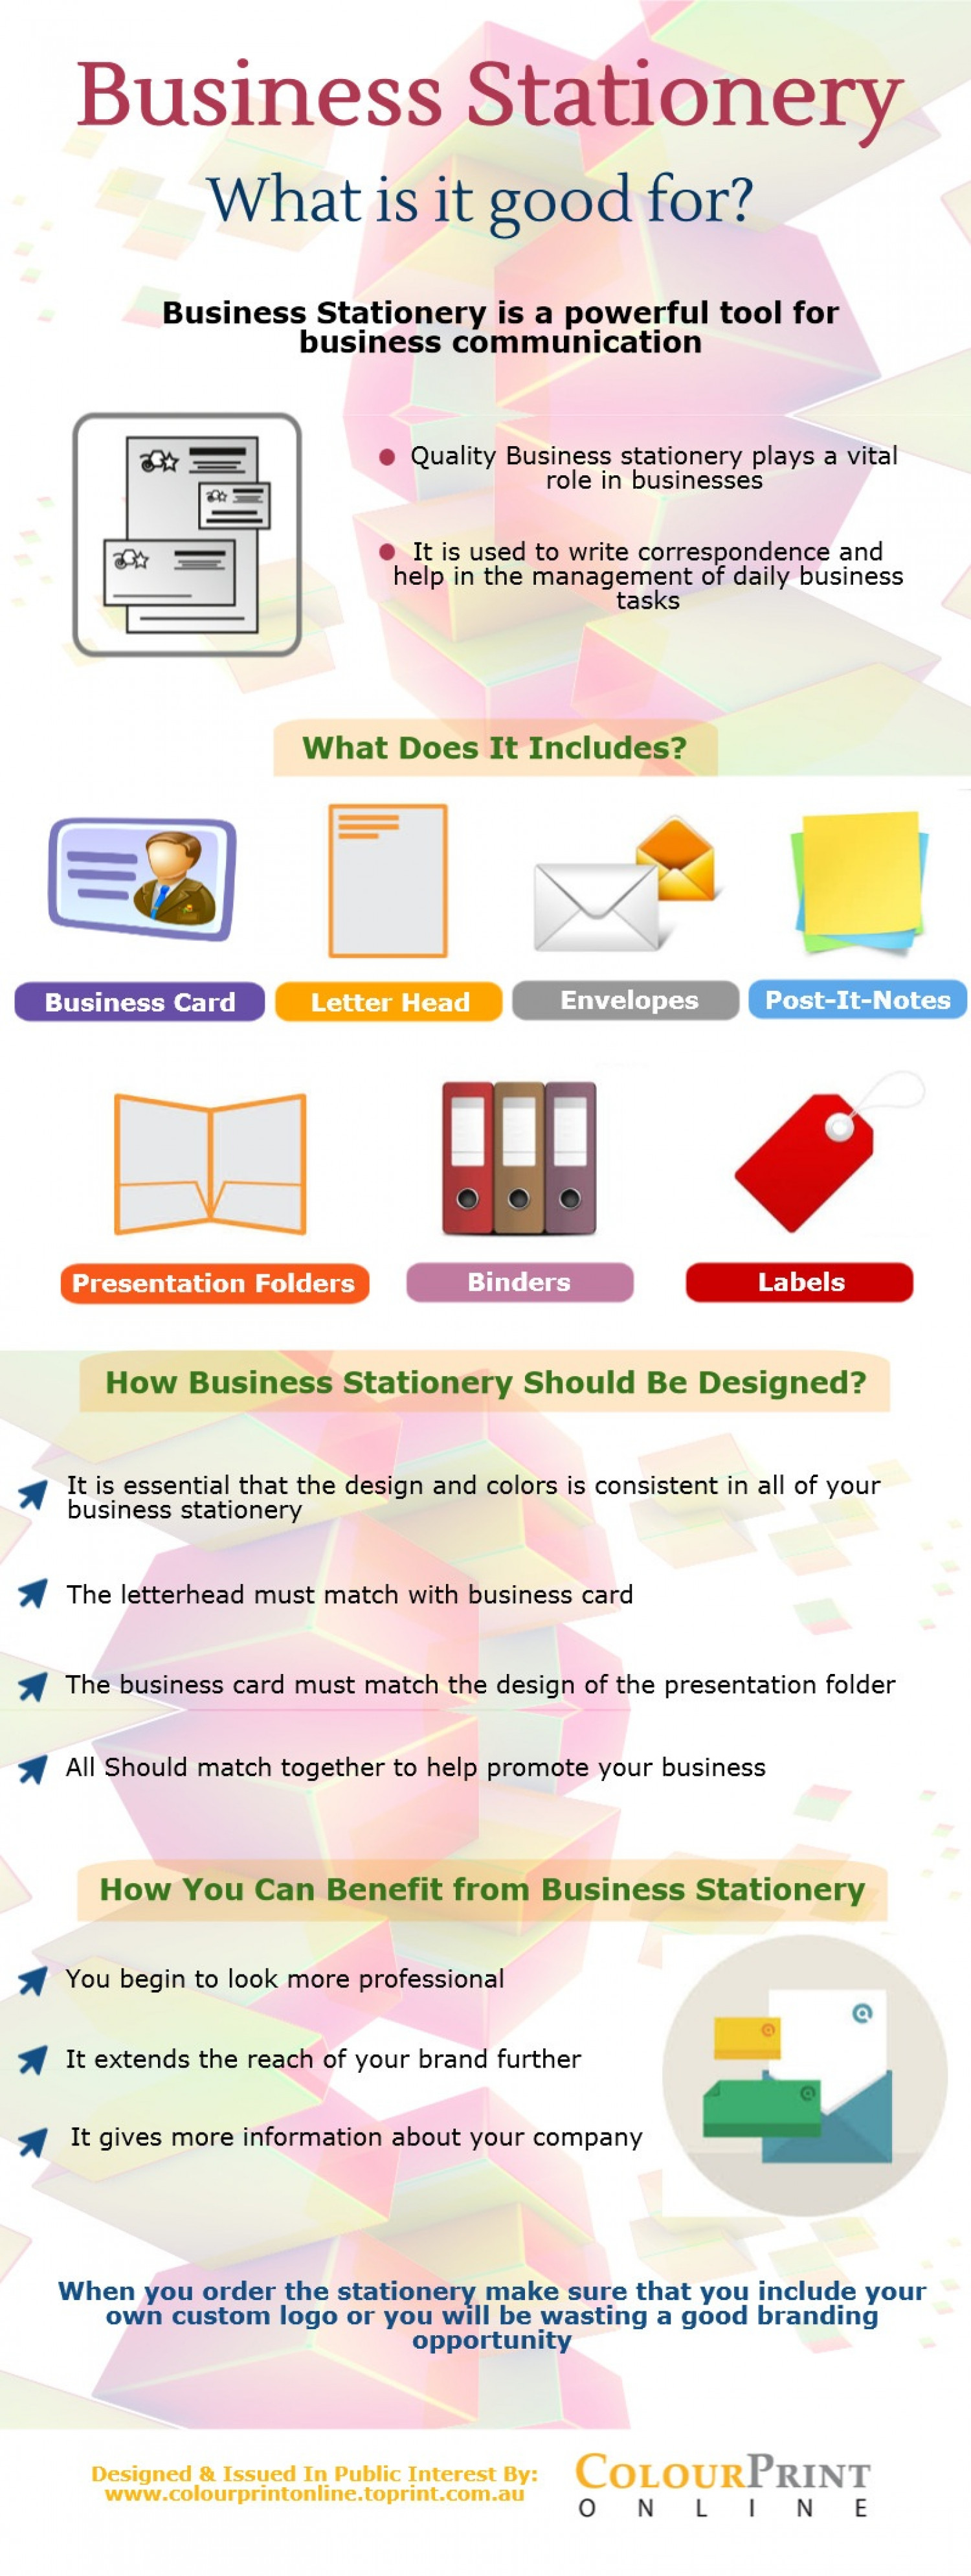 Business Stationery Infographic